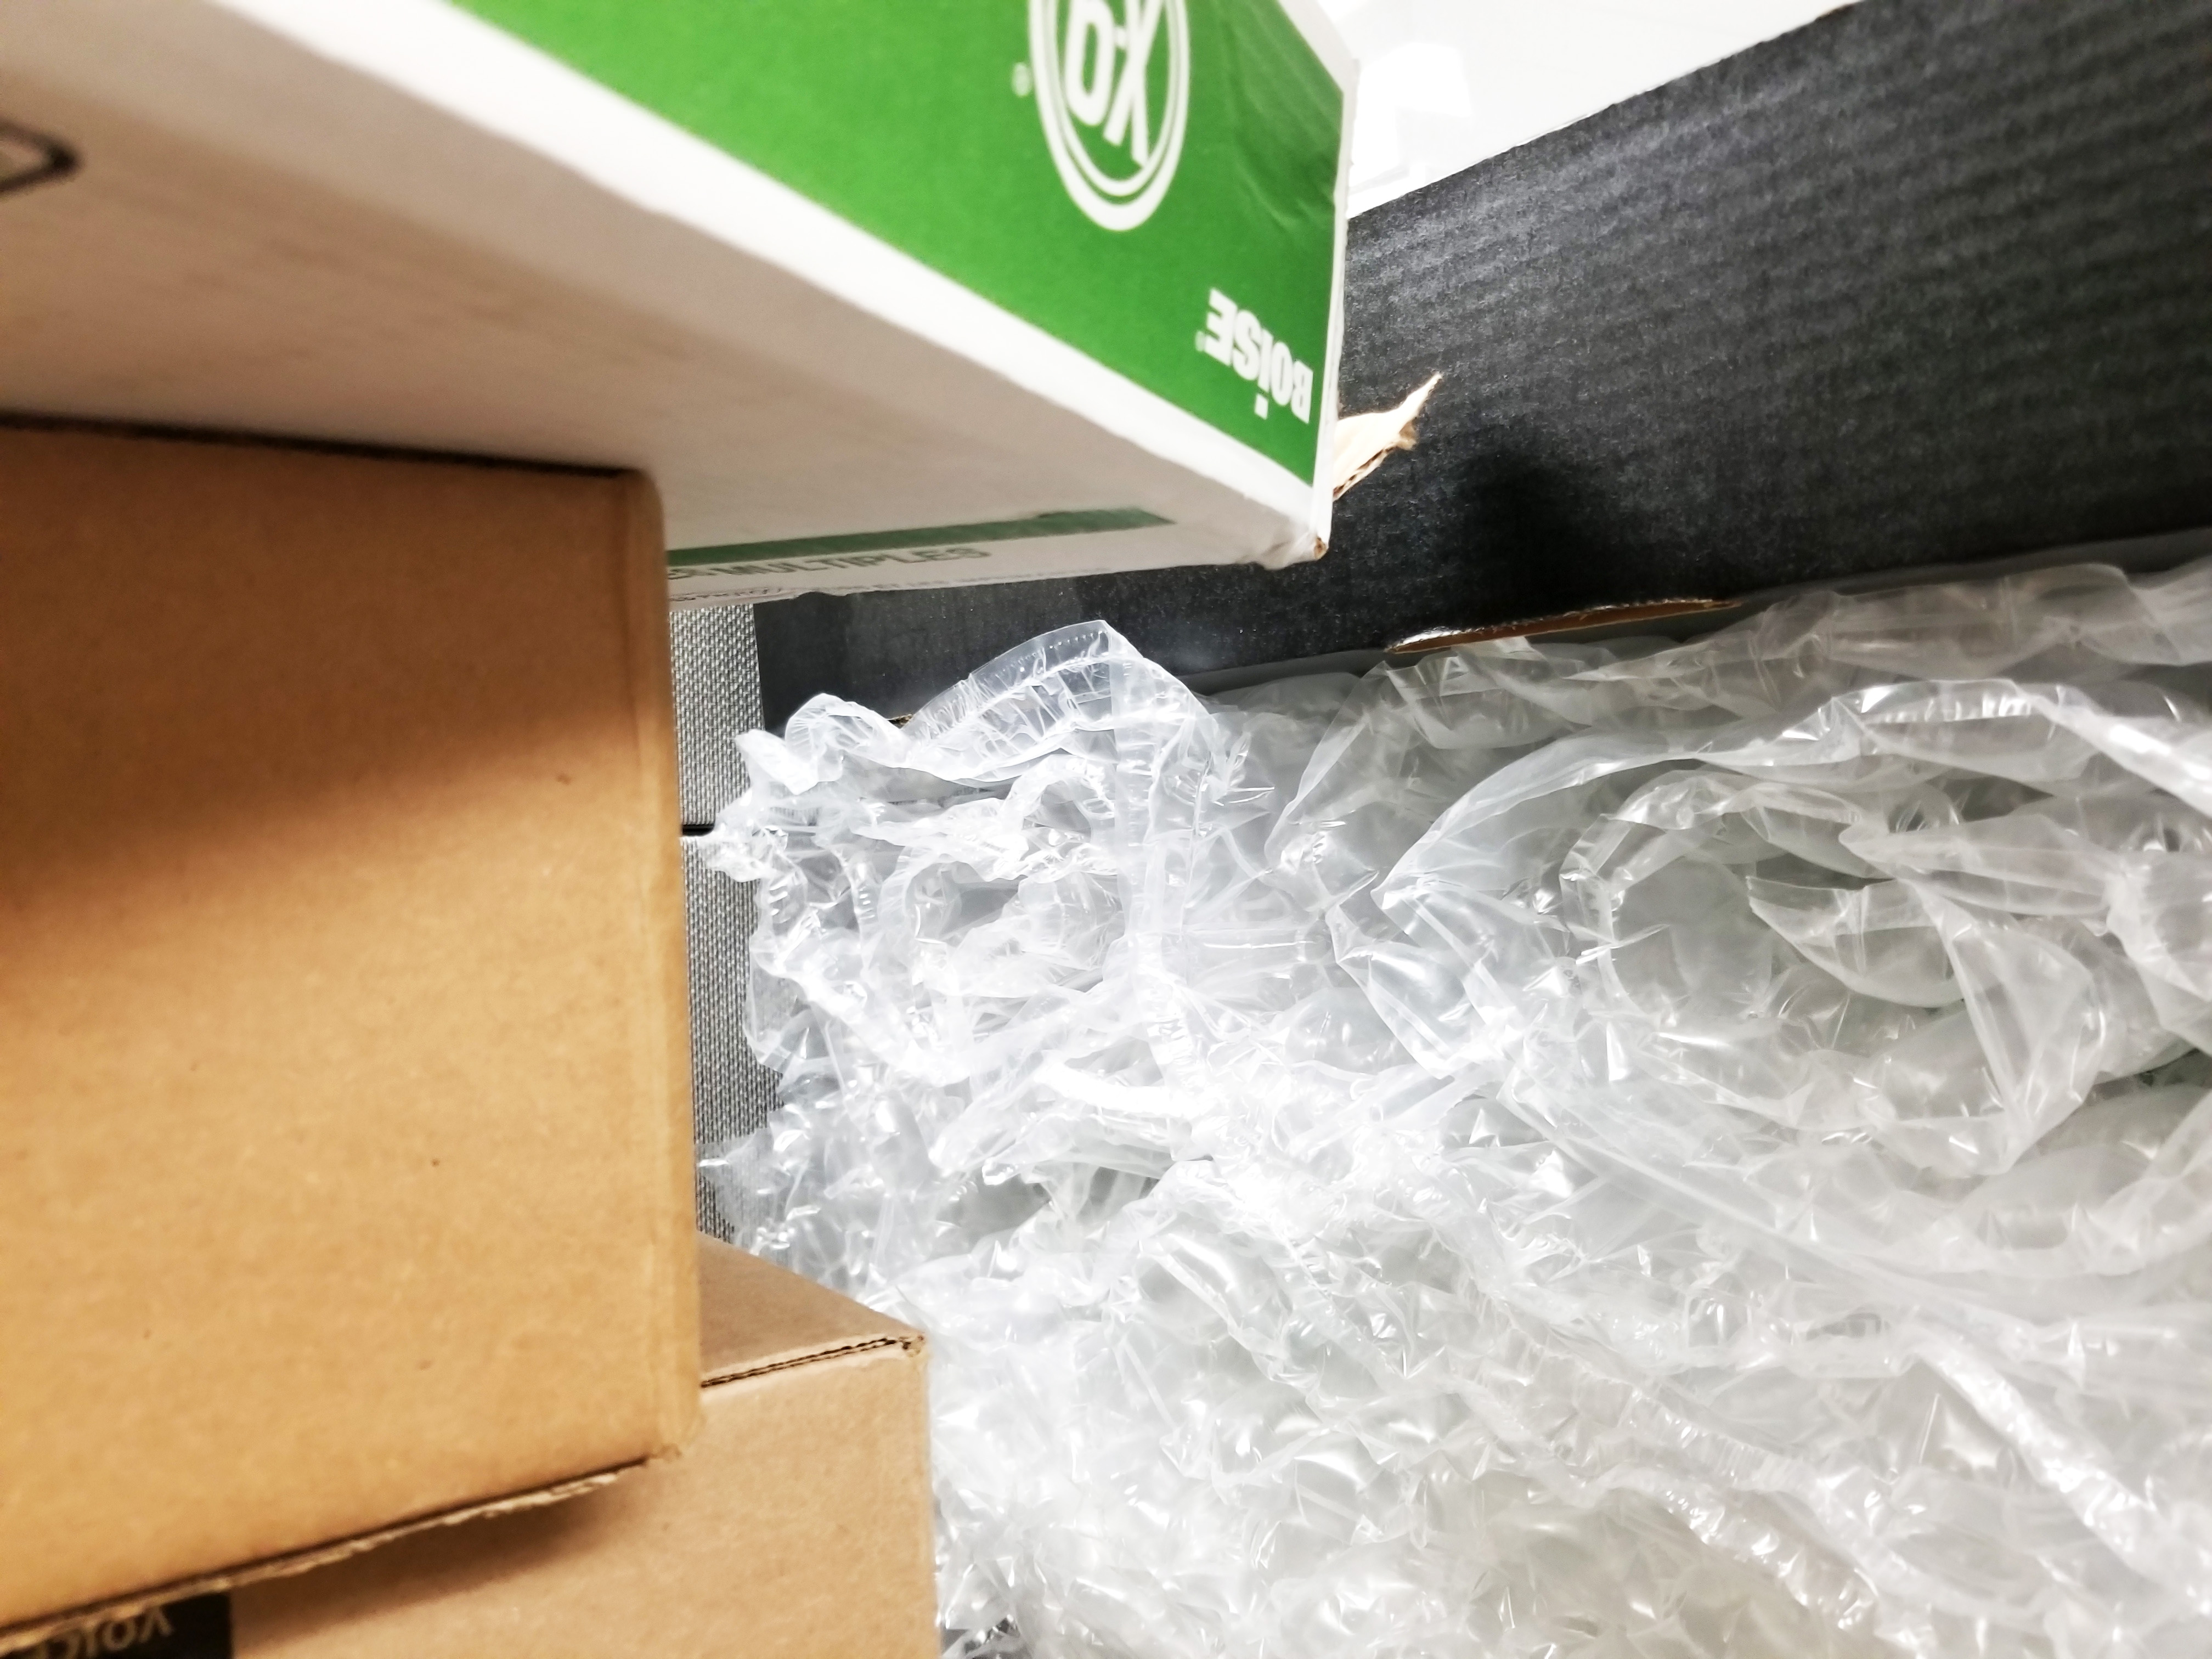 Bubble wrap and cardboard boxes